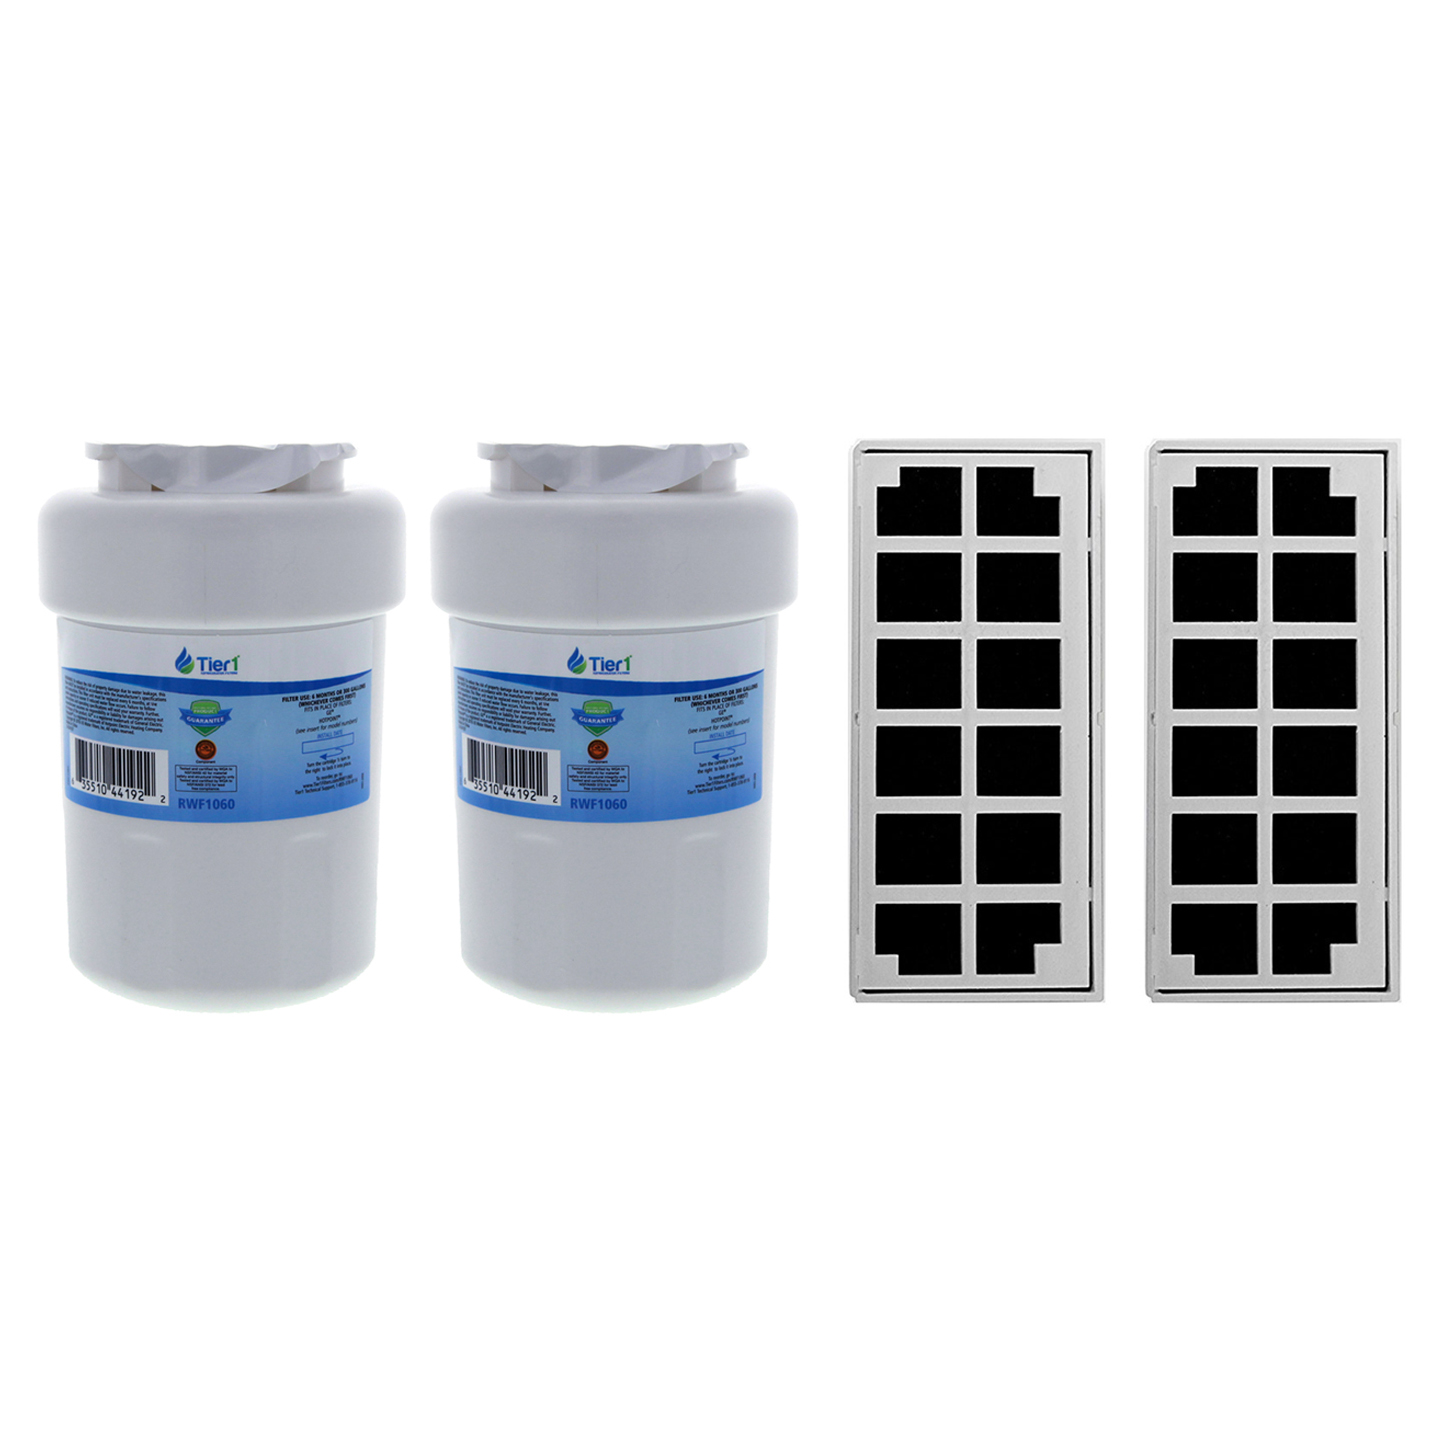 Tier1 Replacement for GE MWF SmartWater, MWFP, MWFA, GWF, GWFA, HWF, 46-9991, 469991, 469905, 469996 Water and Odor Filter Combo 2 Pack